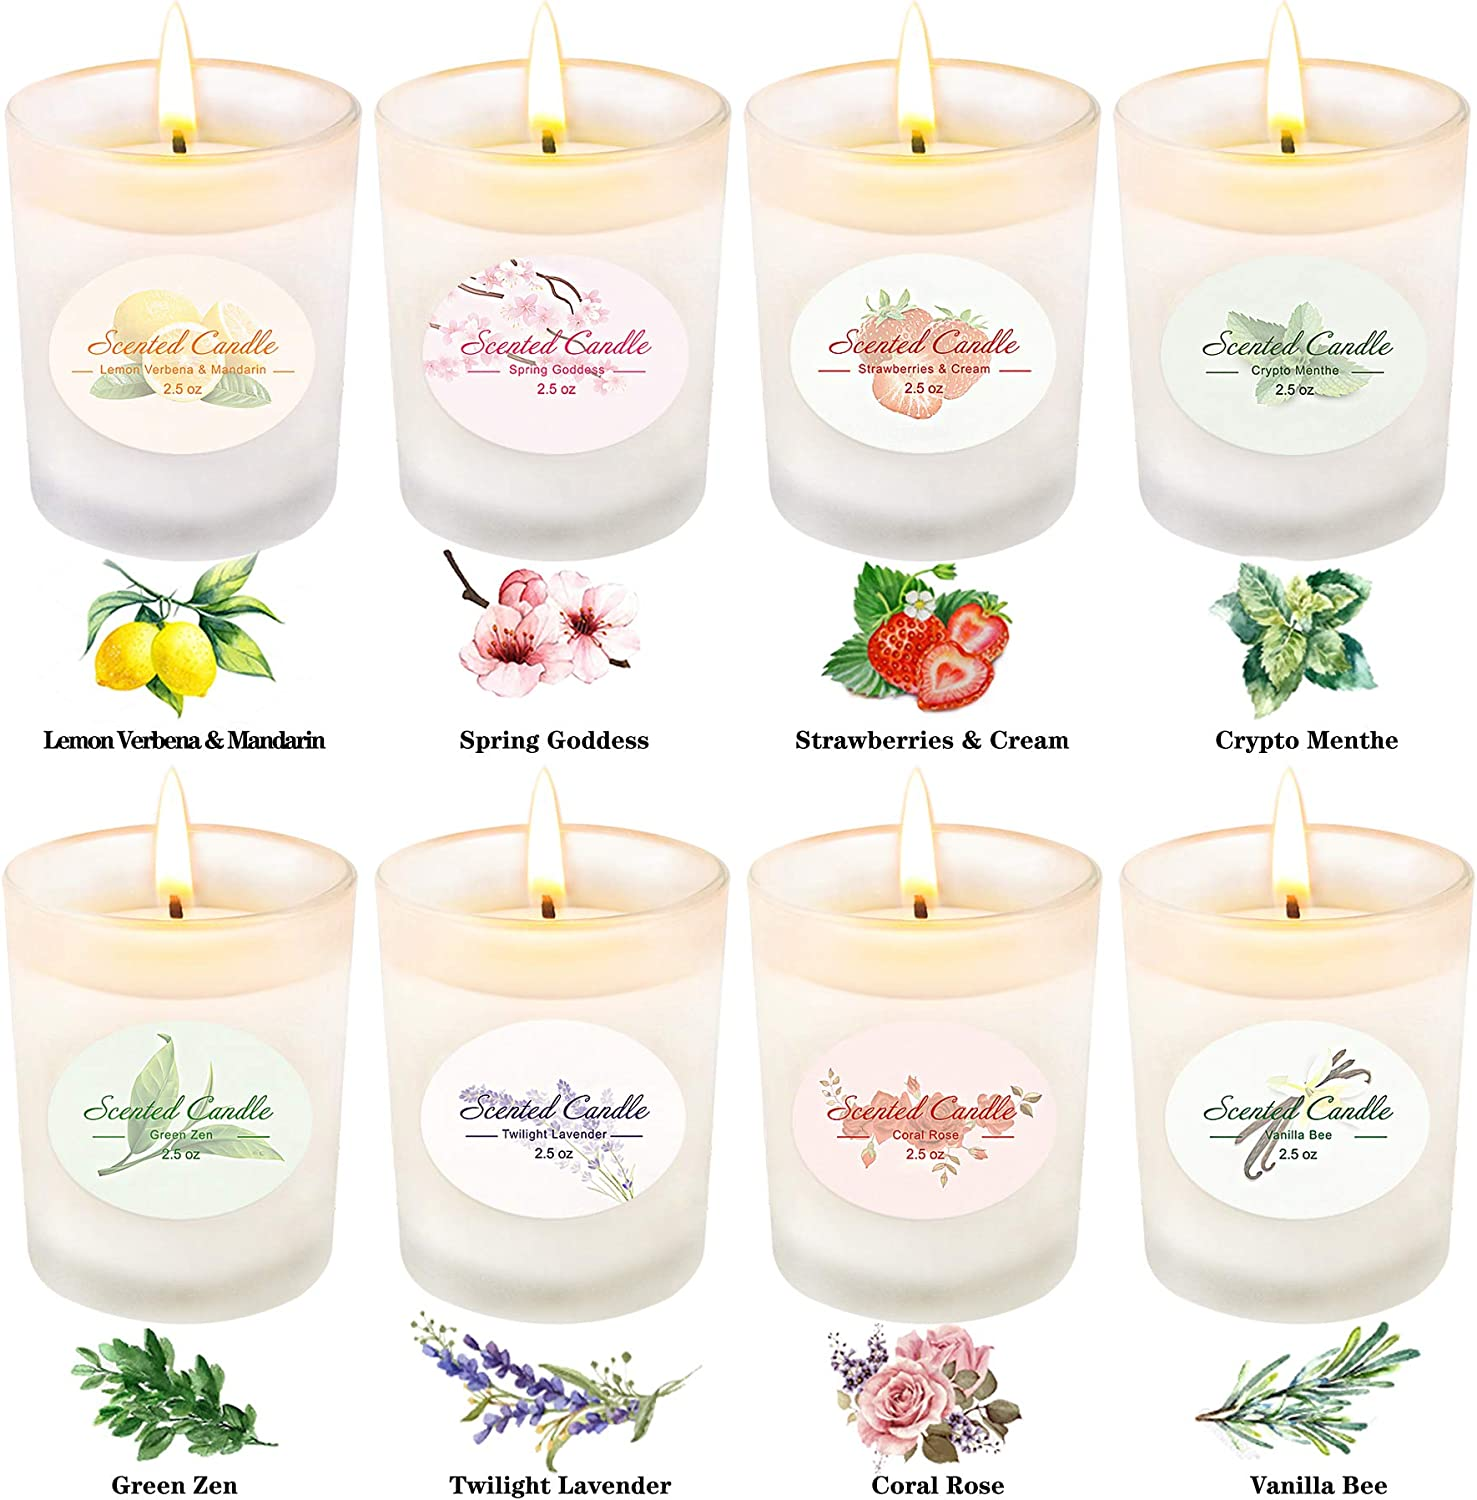 8x2.5Oz Scented Candles Gift Set,Aromatherapy Candle Gifts for Women Valentines Day Portable Glass Natural Premium Soy Wax Fragrance Essential Oils for Stress Relief Relaxation Birthday Gift